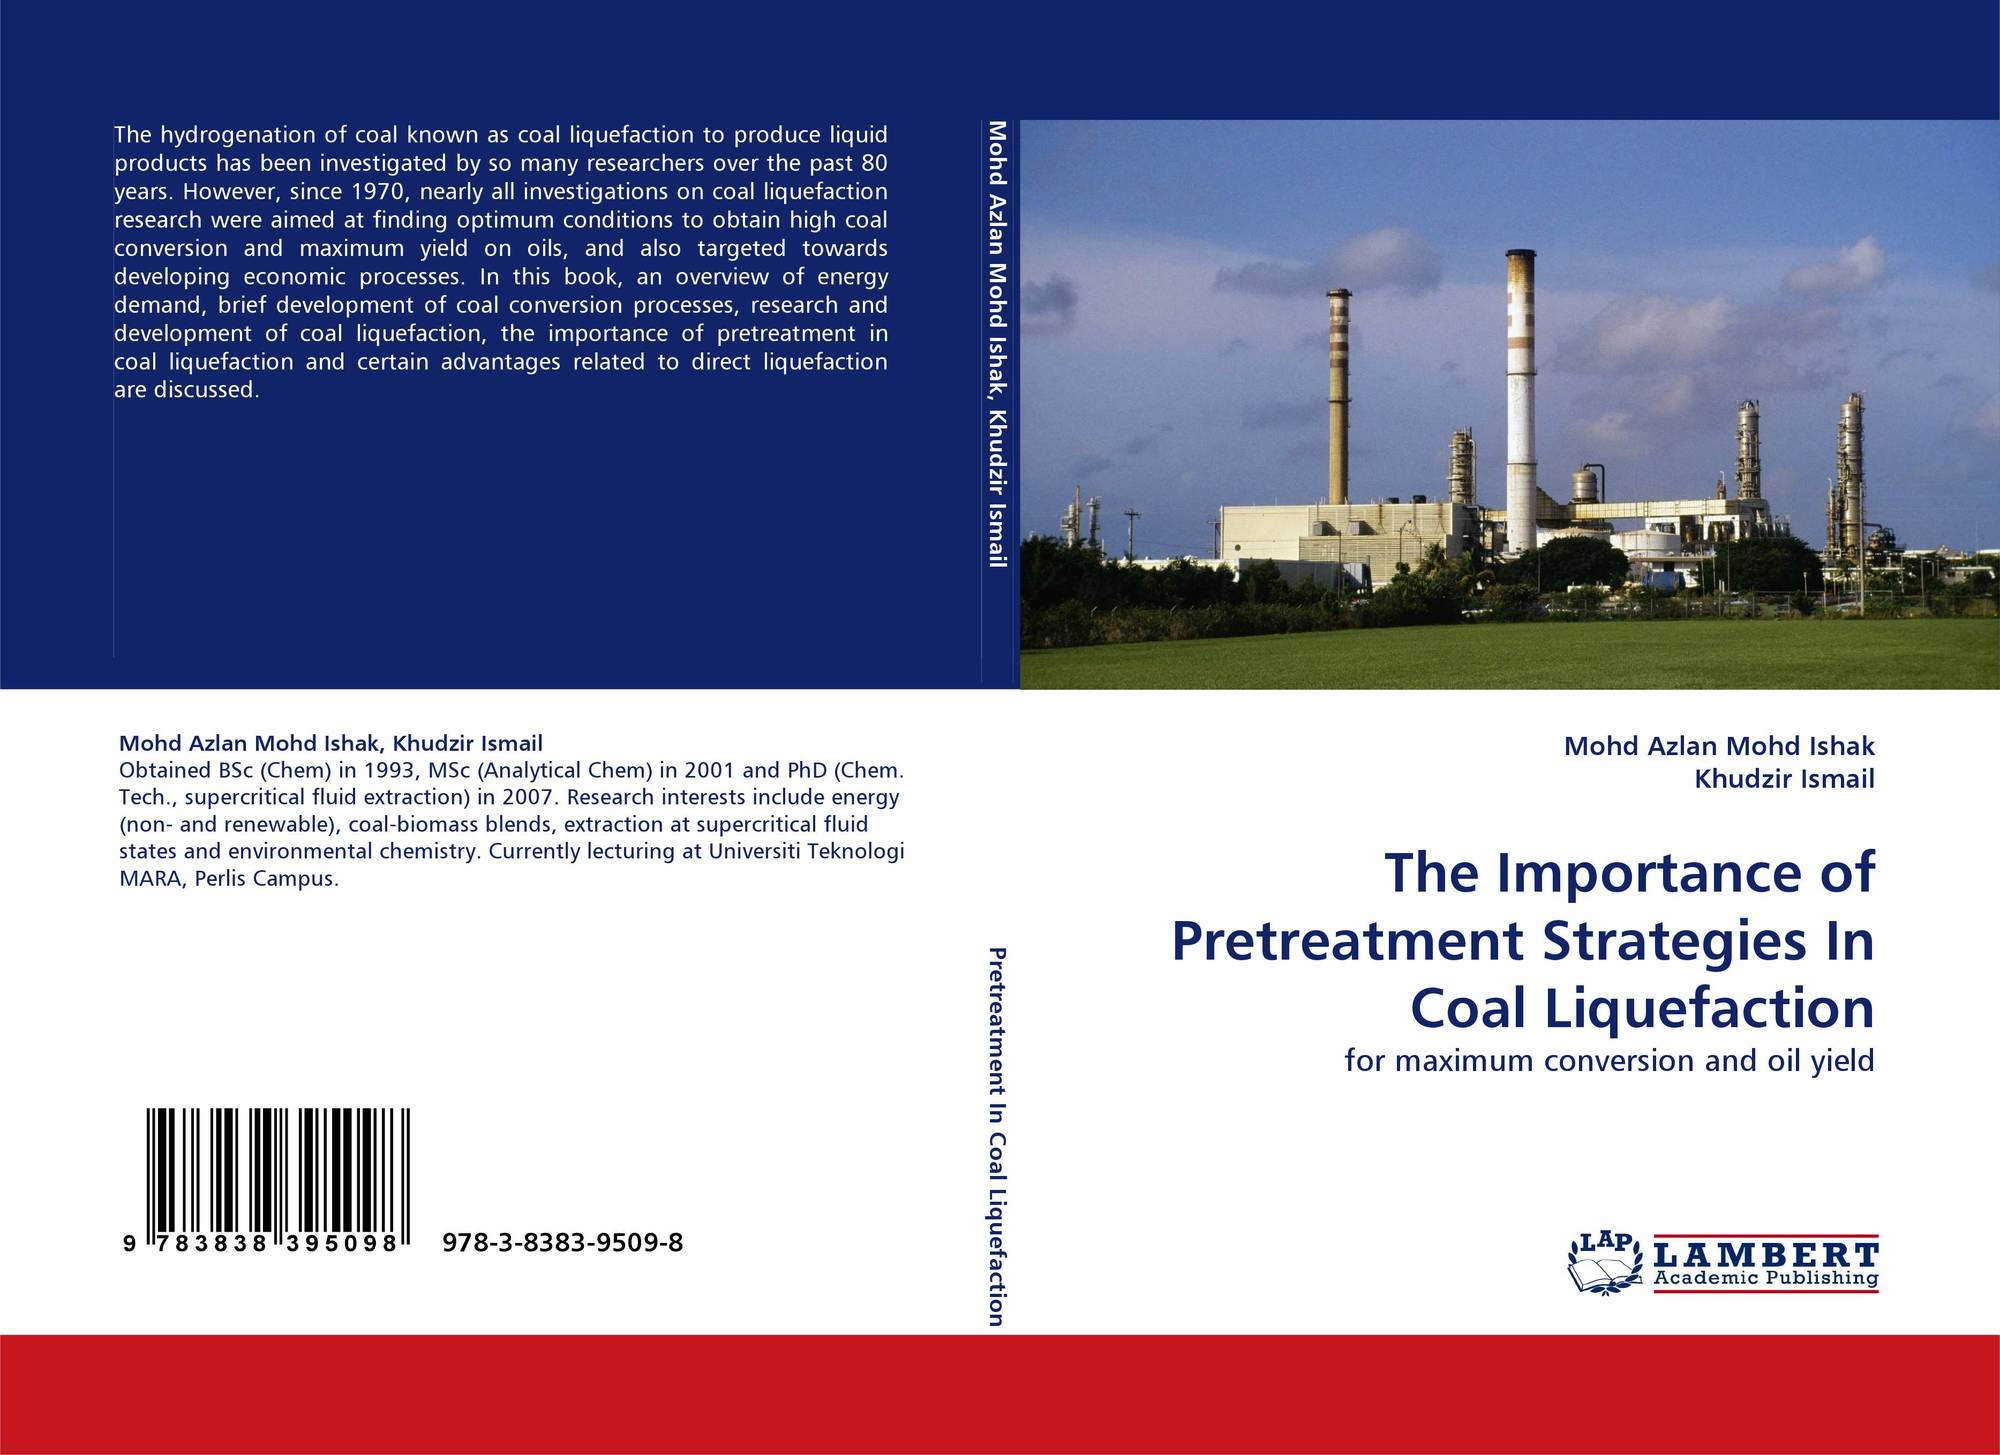 The Importance of Pretreatment Strategies In Coal Liquefaction, 978